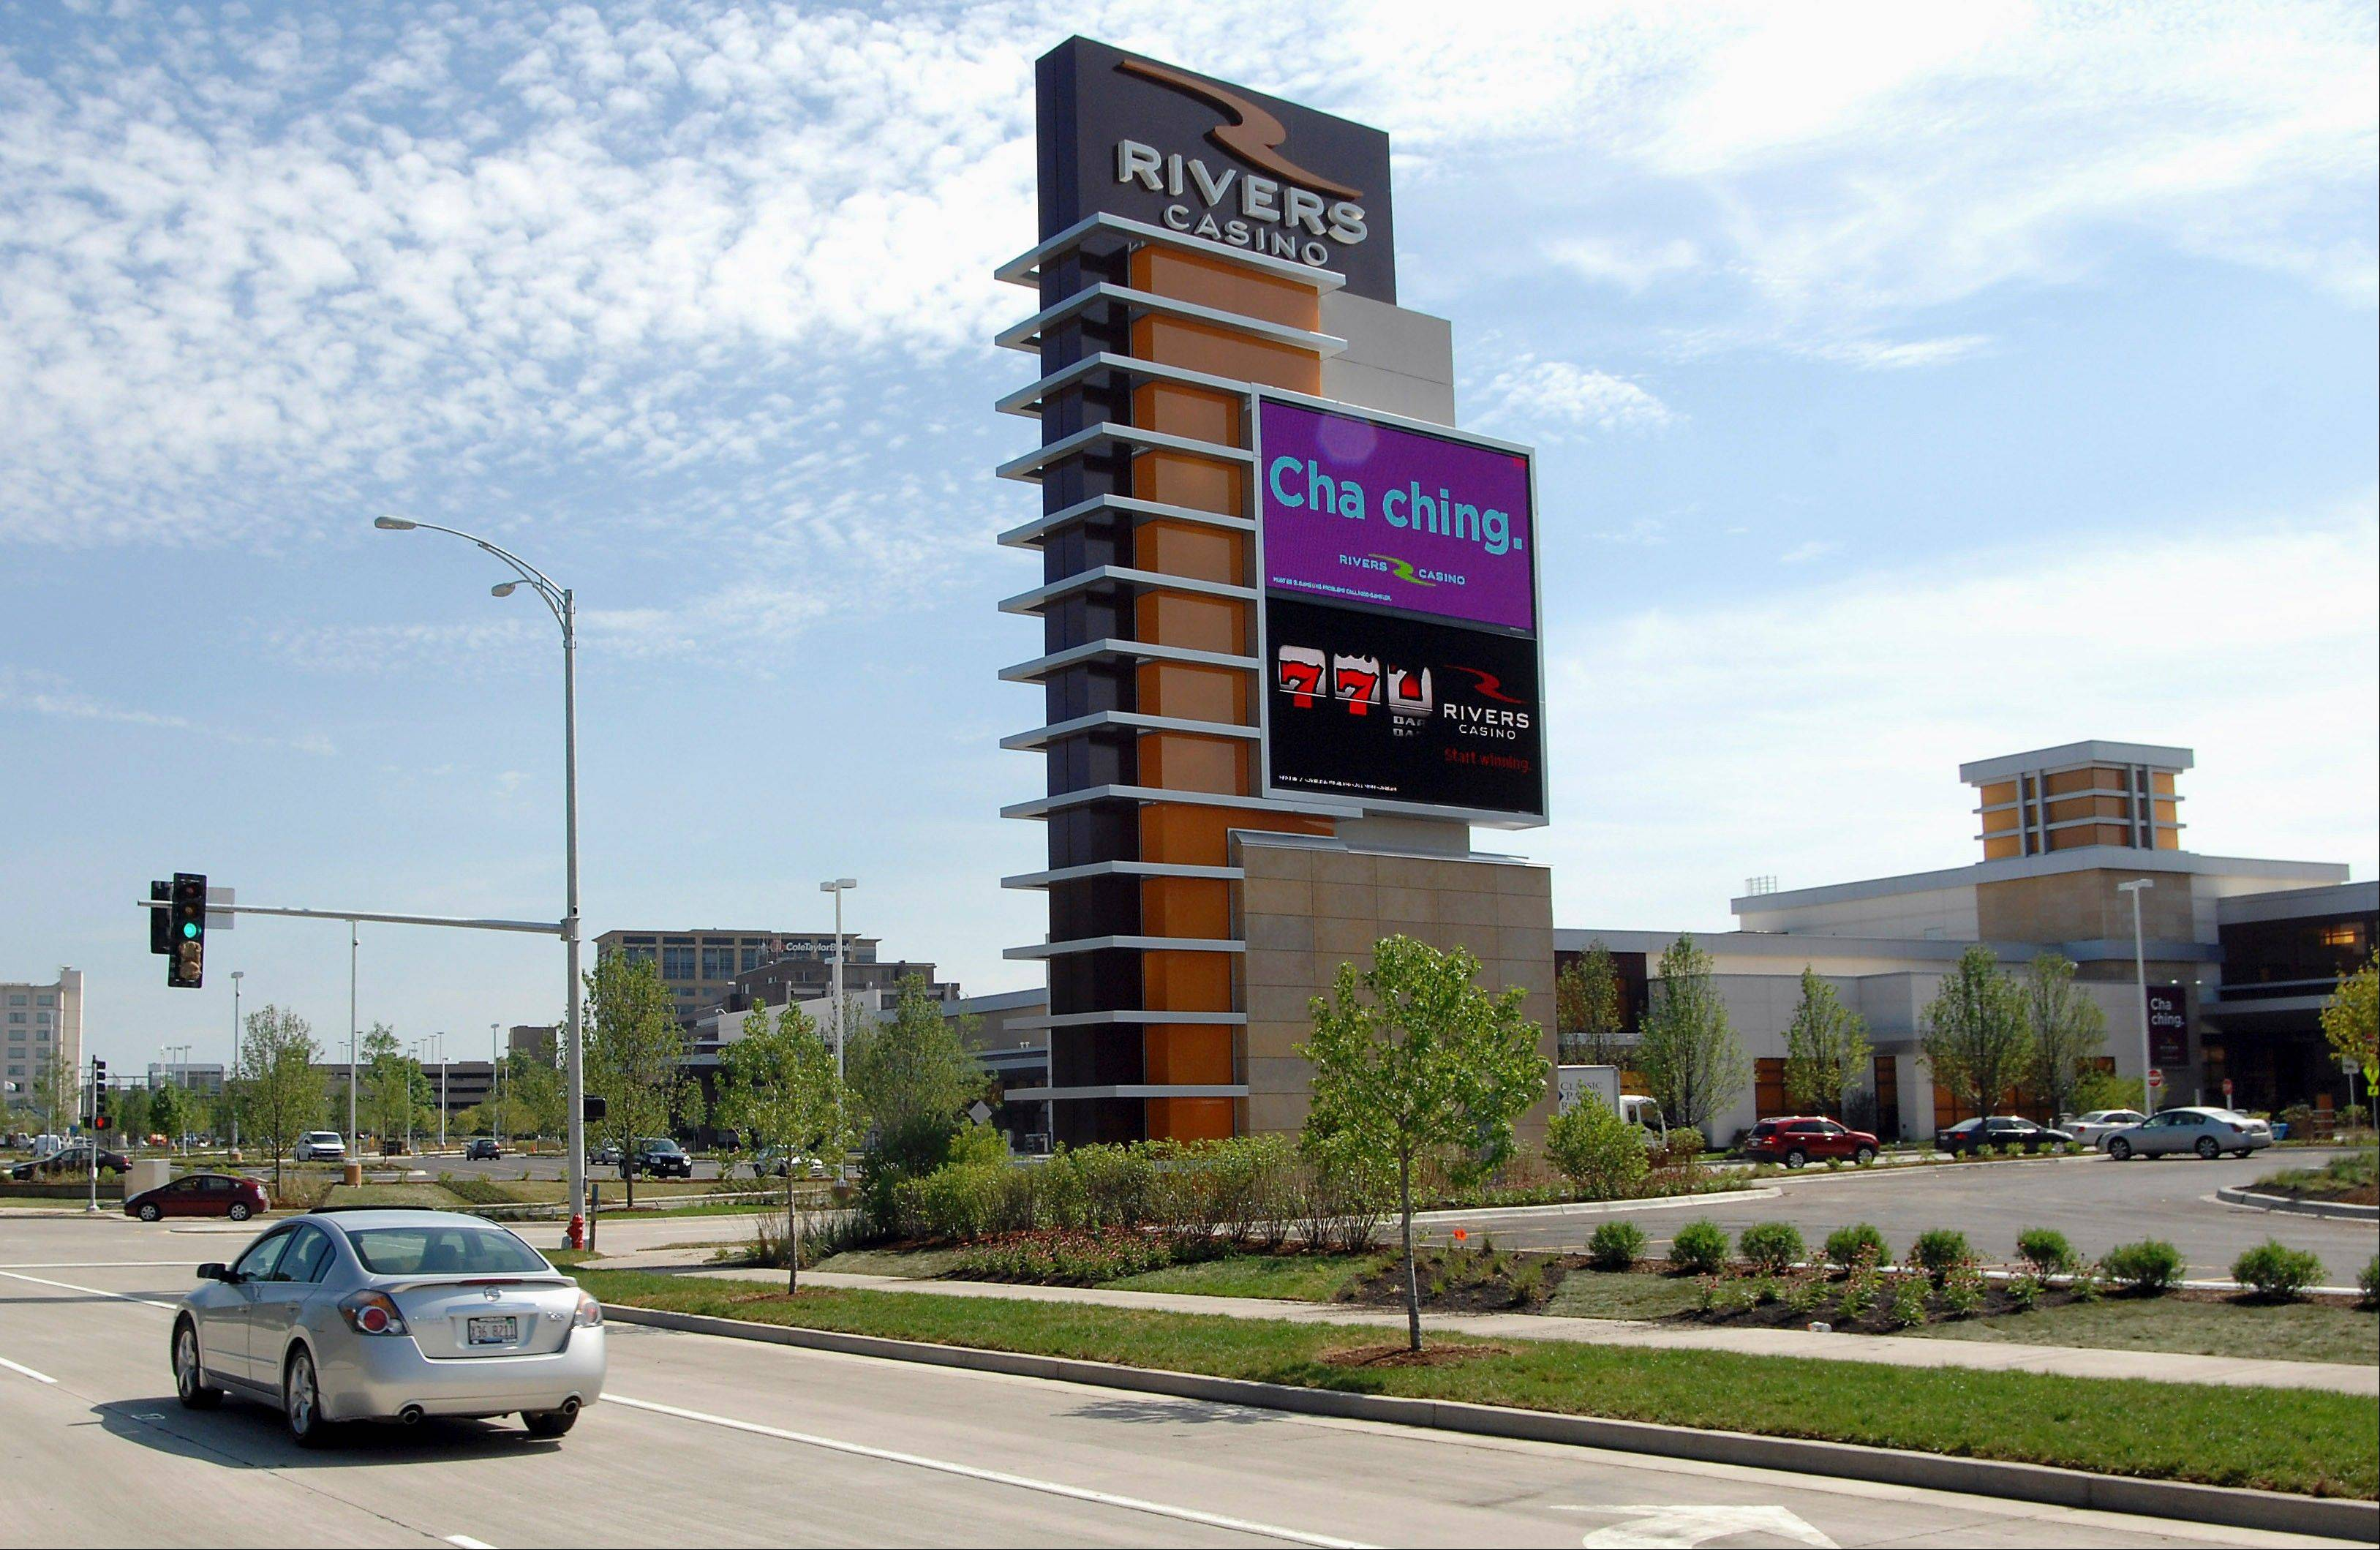 The Rivers Casino is back open and operating normally.